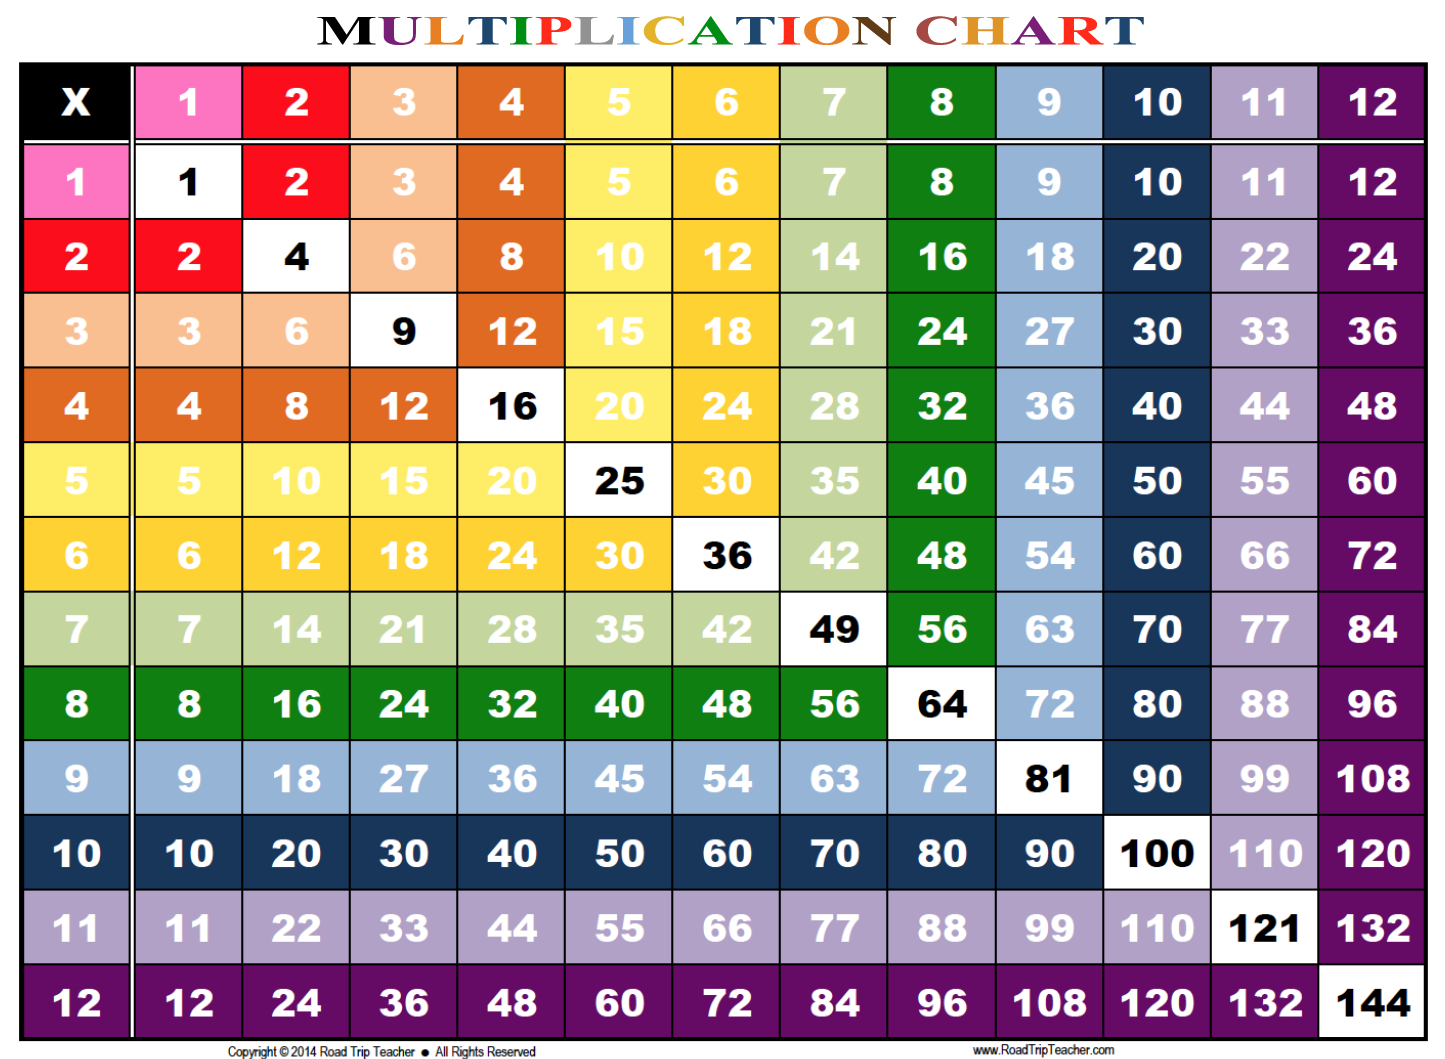 Rainbow Multiplication Chart - Family Educational Resources | Road - Free Printable Multiplication Chart